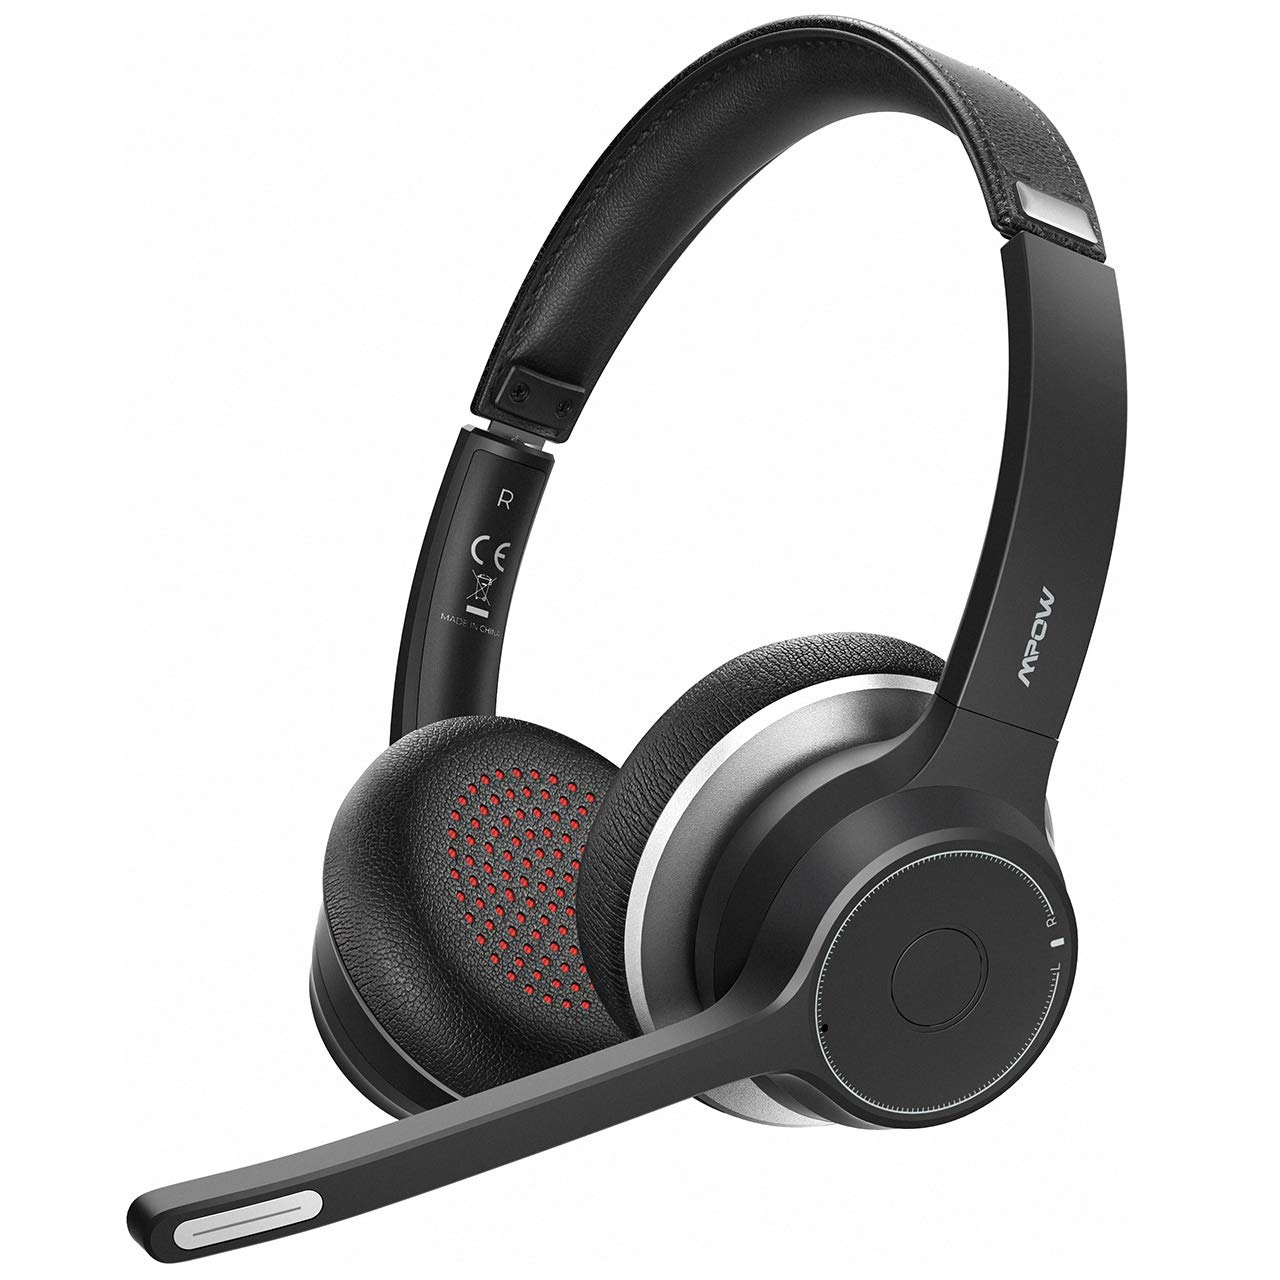 Amazon Com Mpow Hc5 Bluetooth Headset V5 0 Wireless Headphones With Dual Microphone Cvc8 0 Noise Canceling 22 Hrs Talk Time Soft Ear Pad Wireless Business Office Headset For Calling Music Wired Optional Electronics